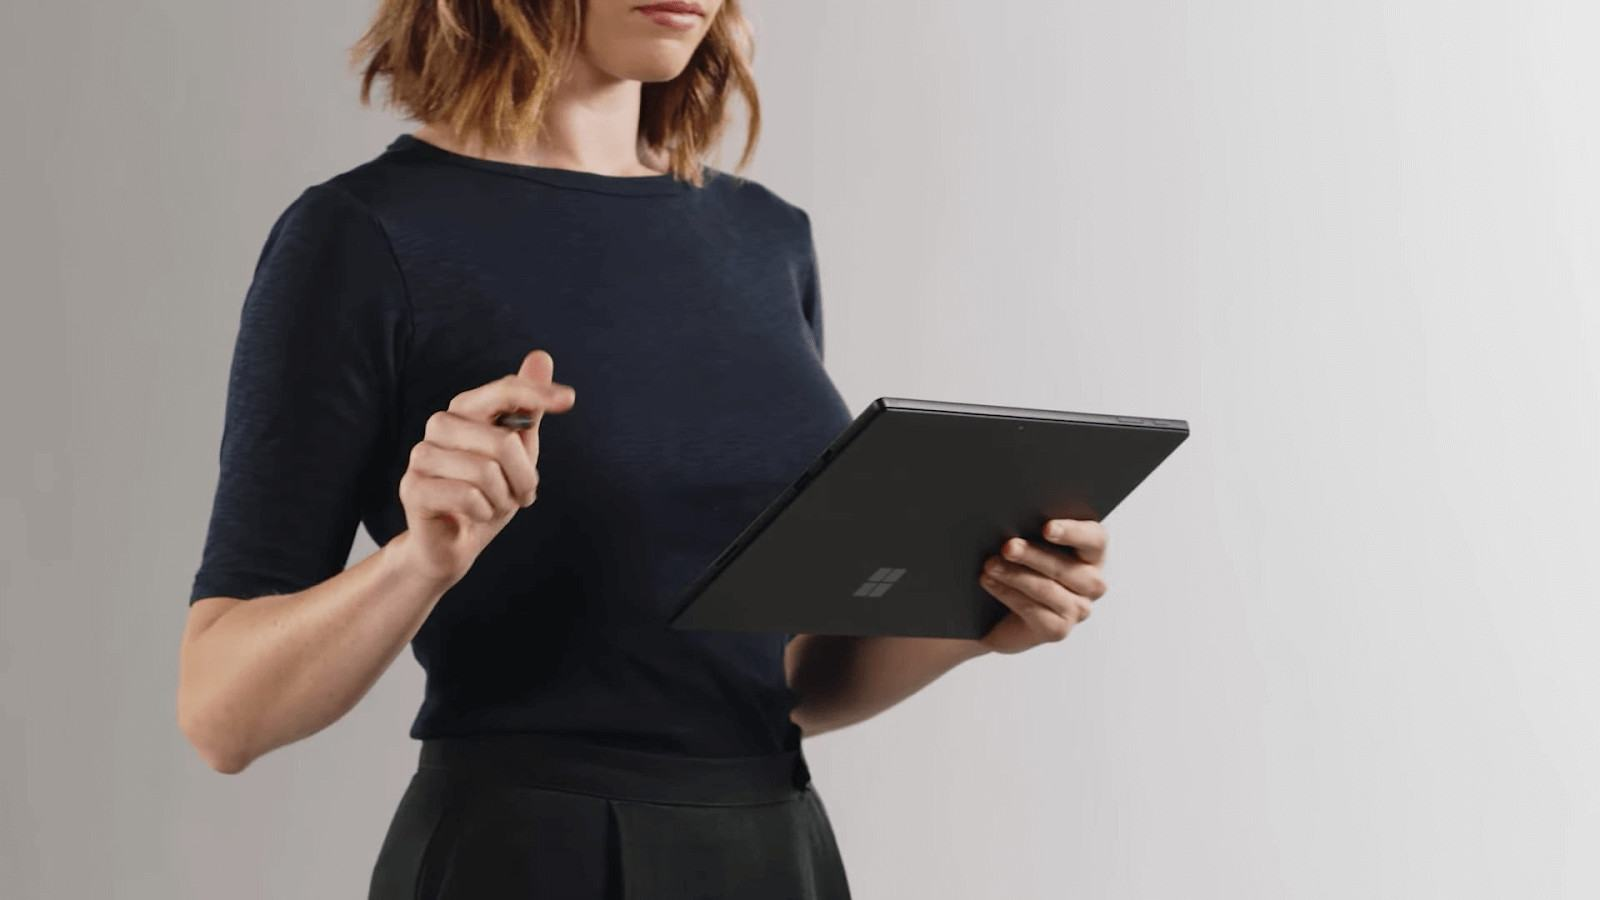 review surface pro 6